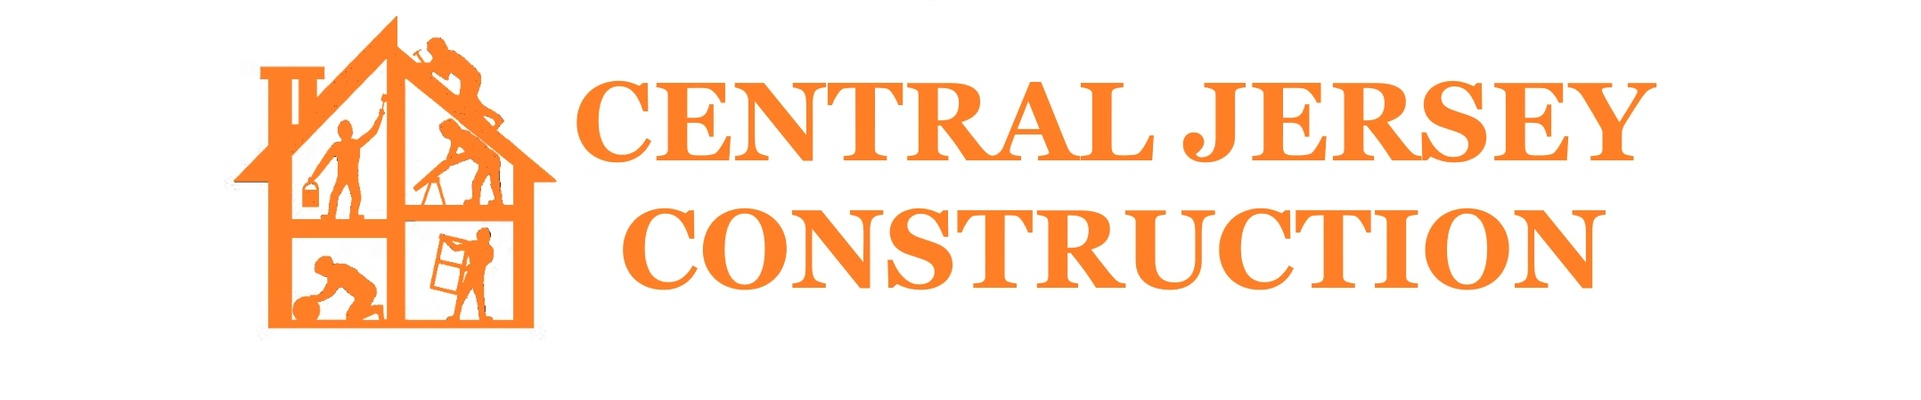 Central Jersey Construction